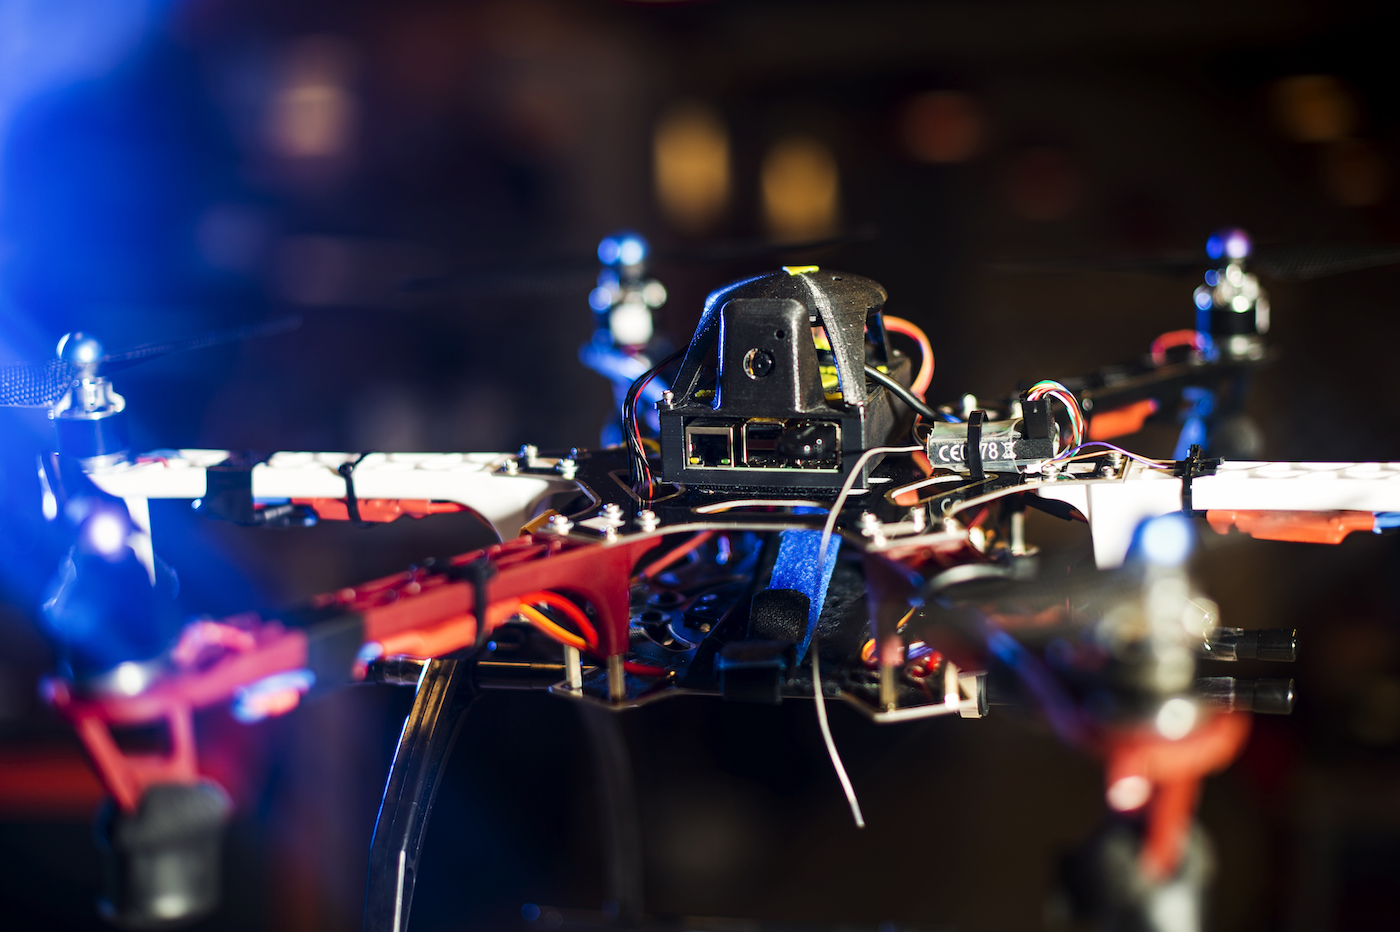 A hexi-copter drone in Taskin Padir's lab. The ultimate vision is a robot swarm deployed to assist engineers in damage inspection. Photo by Adam Glanzman/Northeastern University